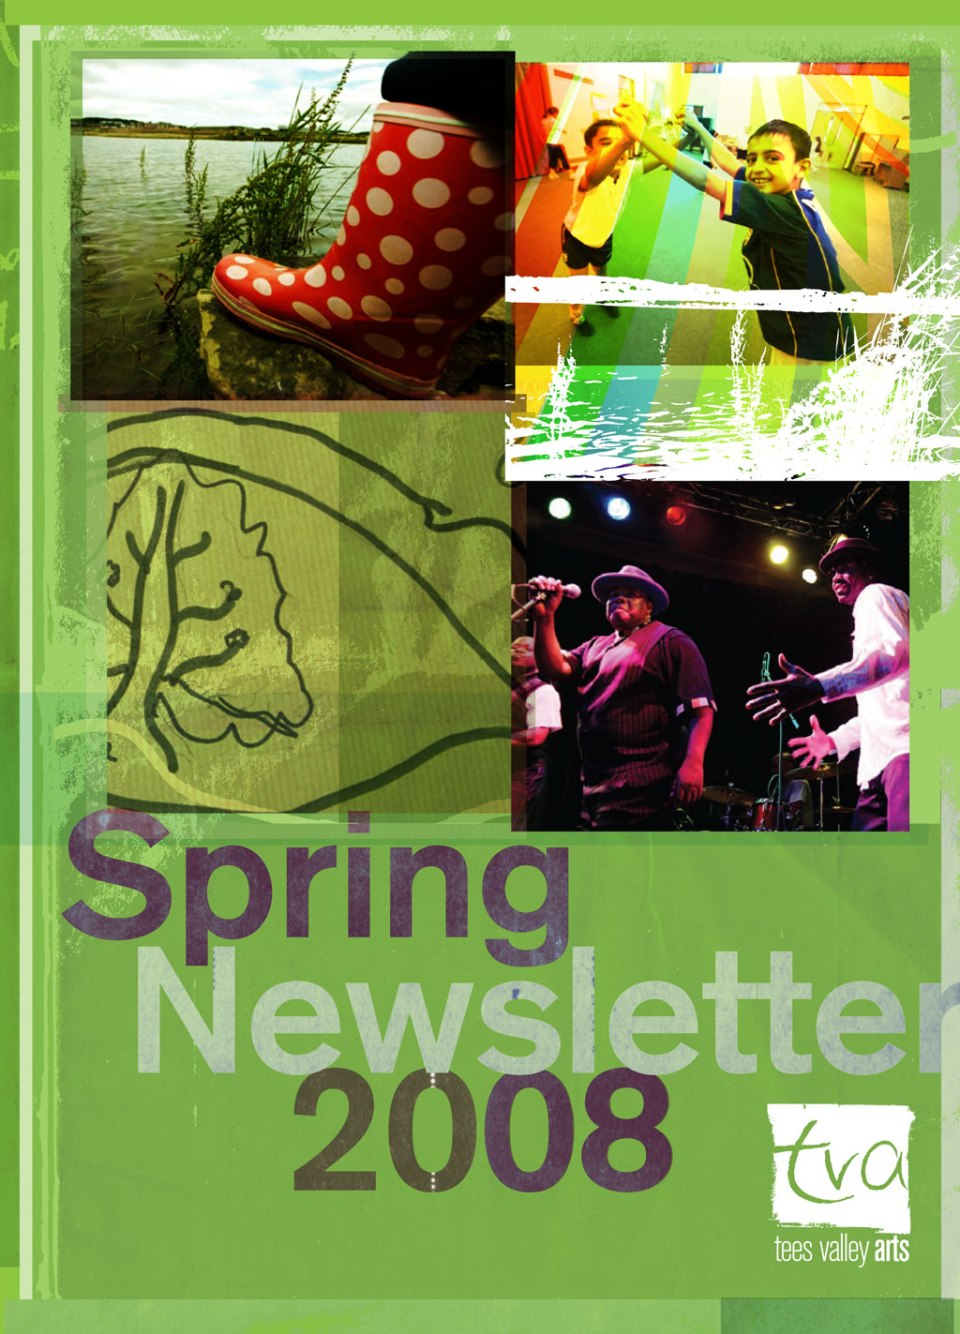 TVA Spring Newsletter 2008